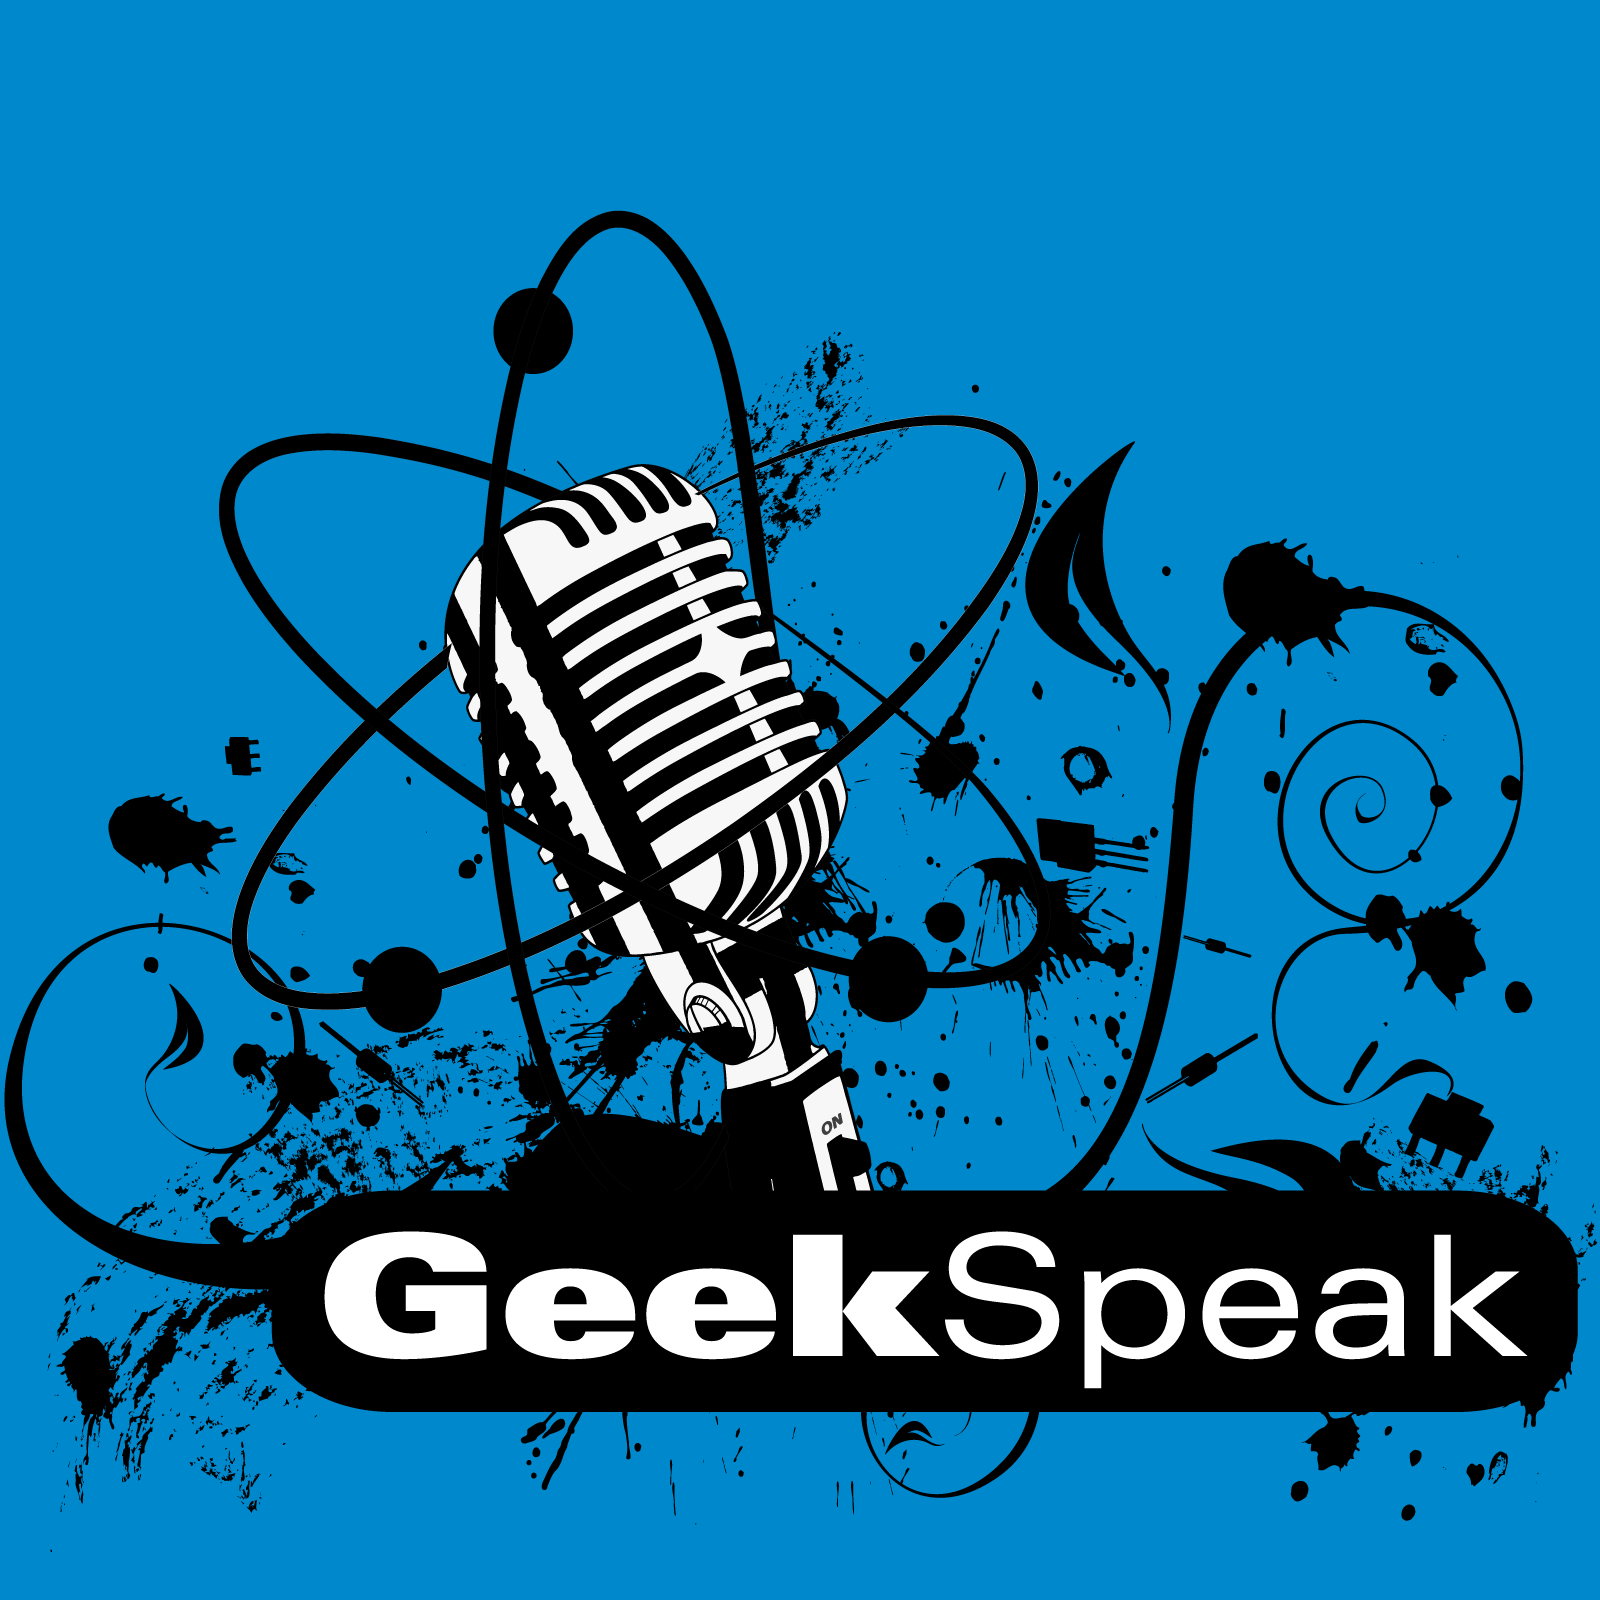 GeekSpeak | How Technology Affects Society and Culture from the Geek Perspective